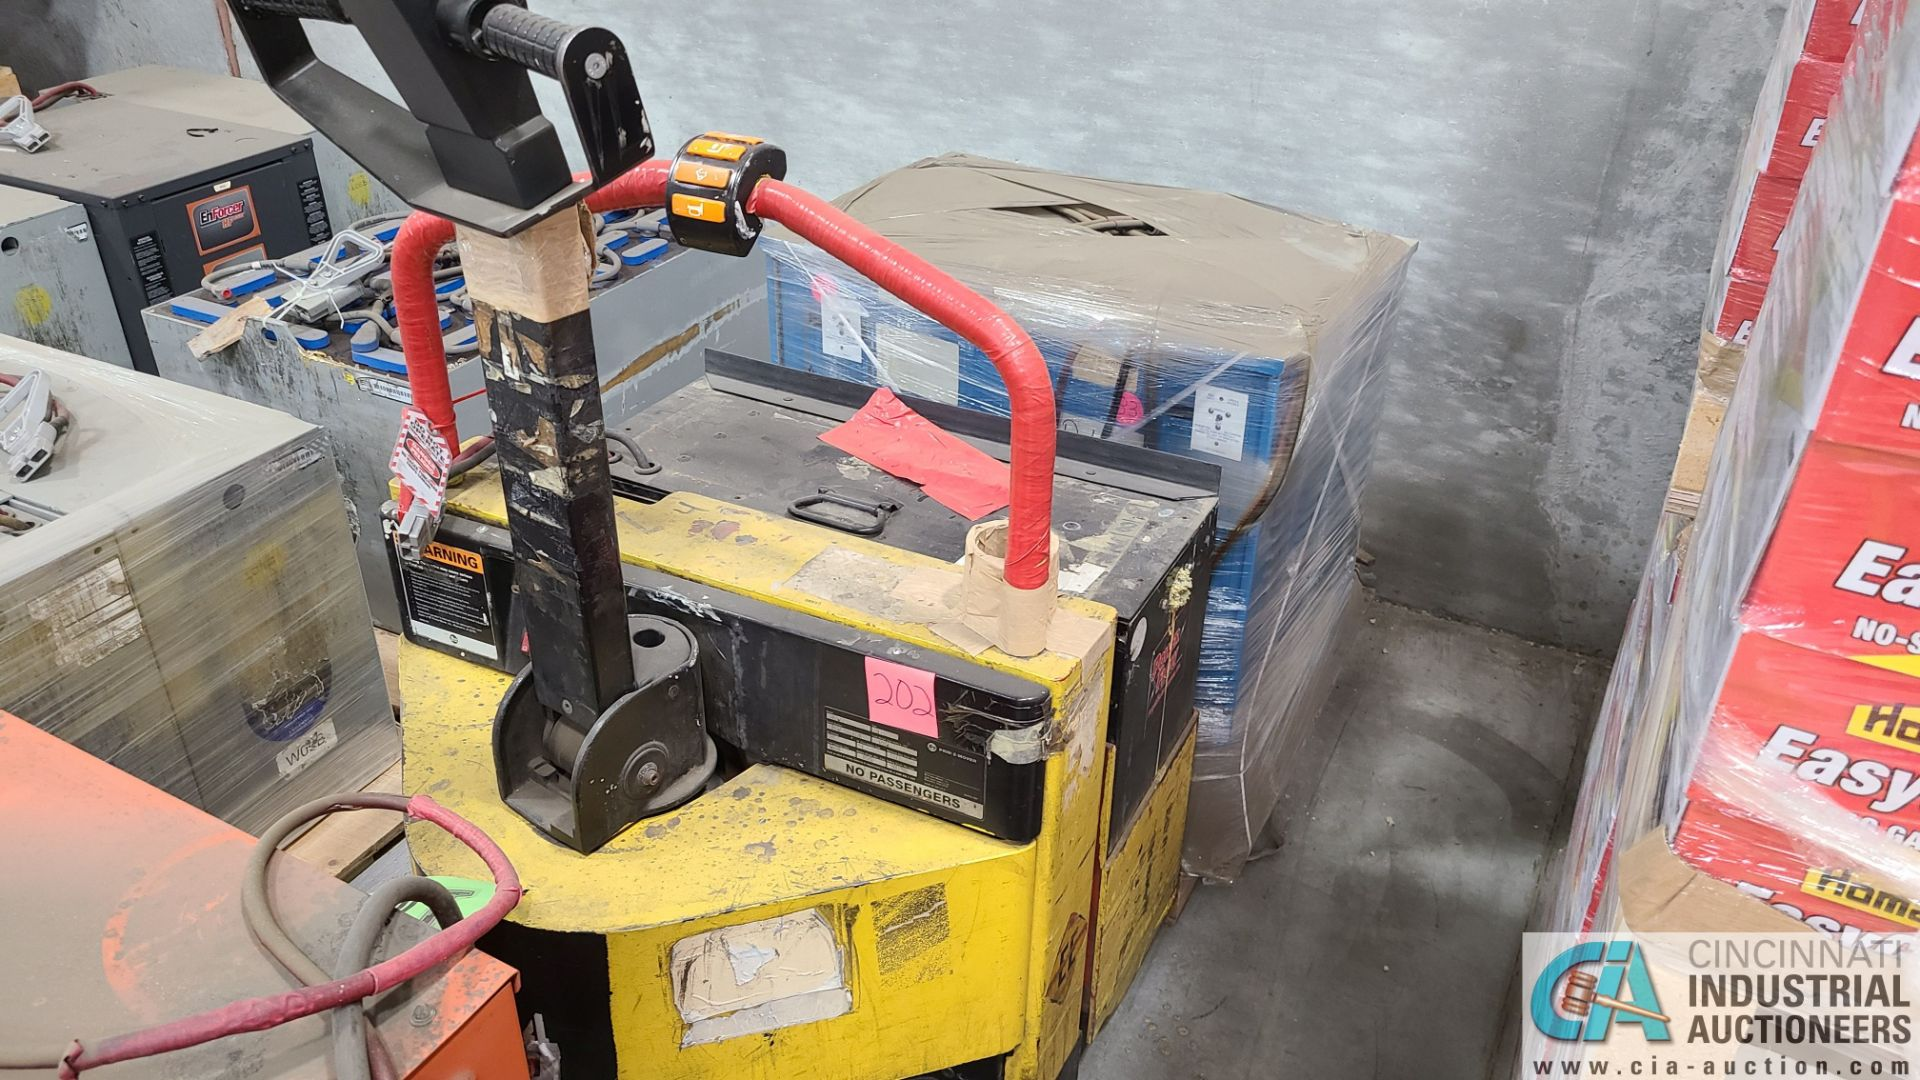 PRIME MODEL HMX65 ELECTRIC PALLET TRUCK; S/N HMX6531038002, W/ BATTERY, 642 HOURS (2570 ORCHARD